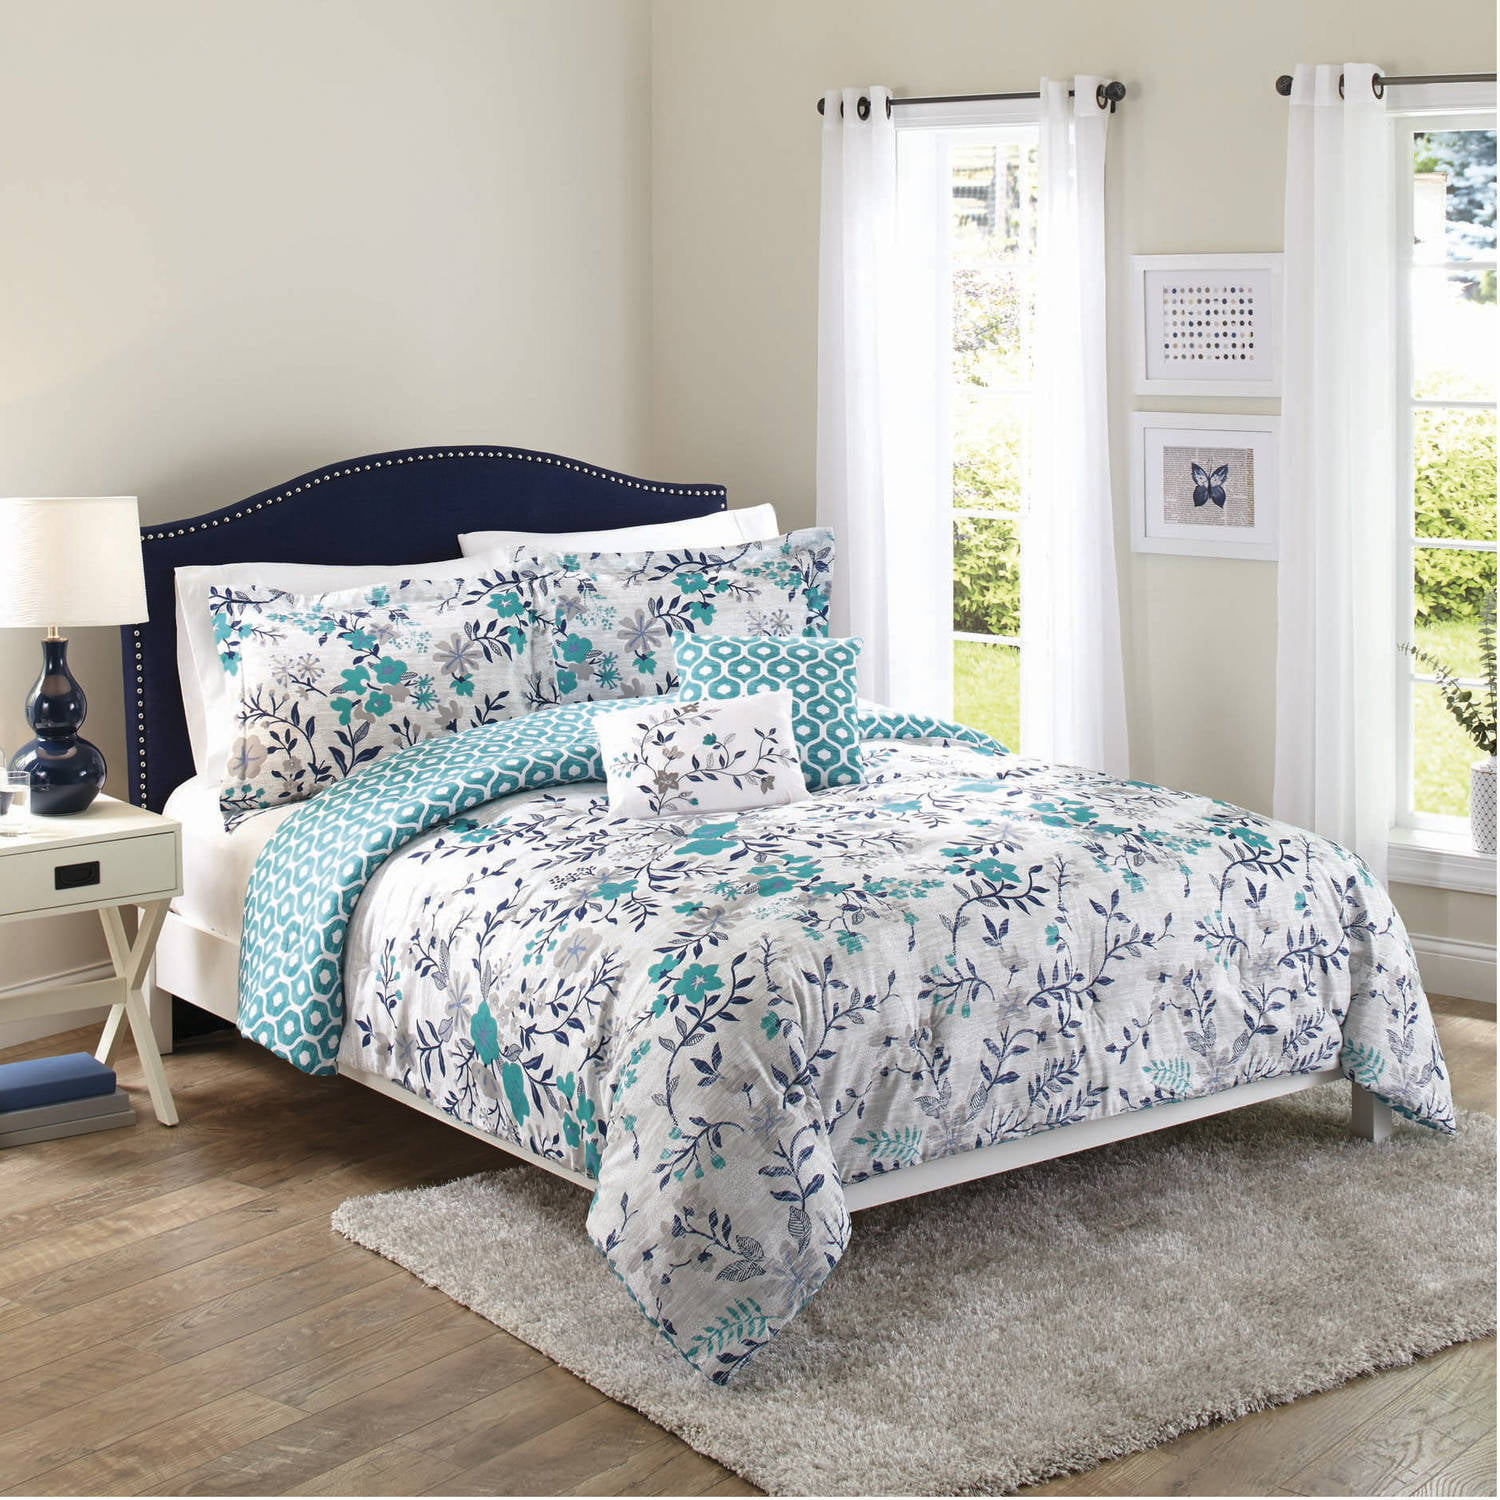 Better Homes and Gardens Teal Flowers, 5-Piece Set - Walmart.com